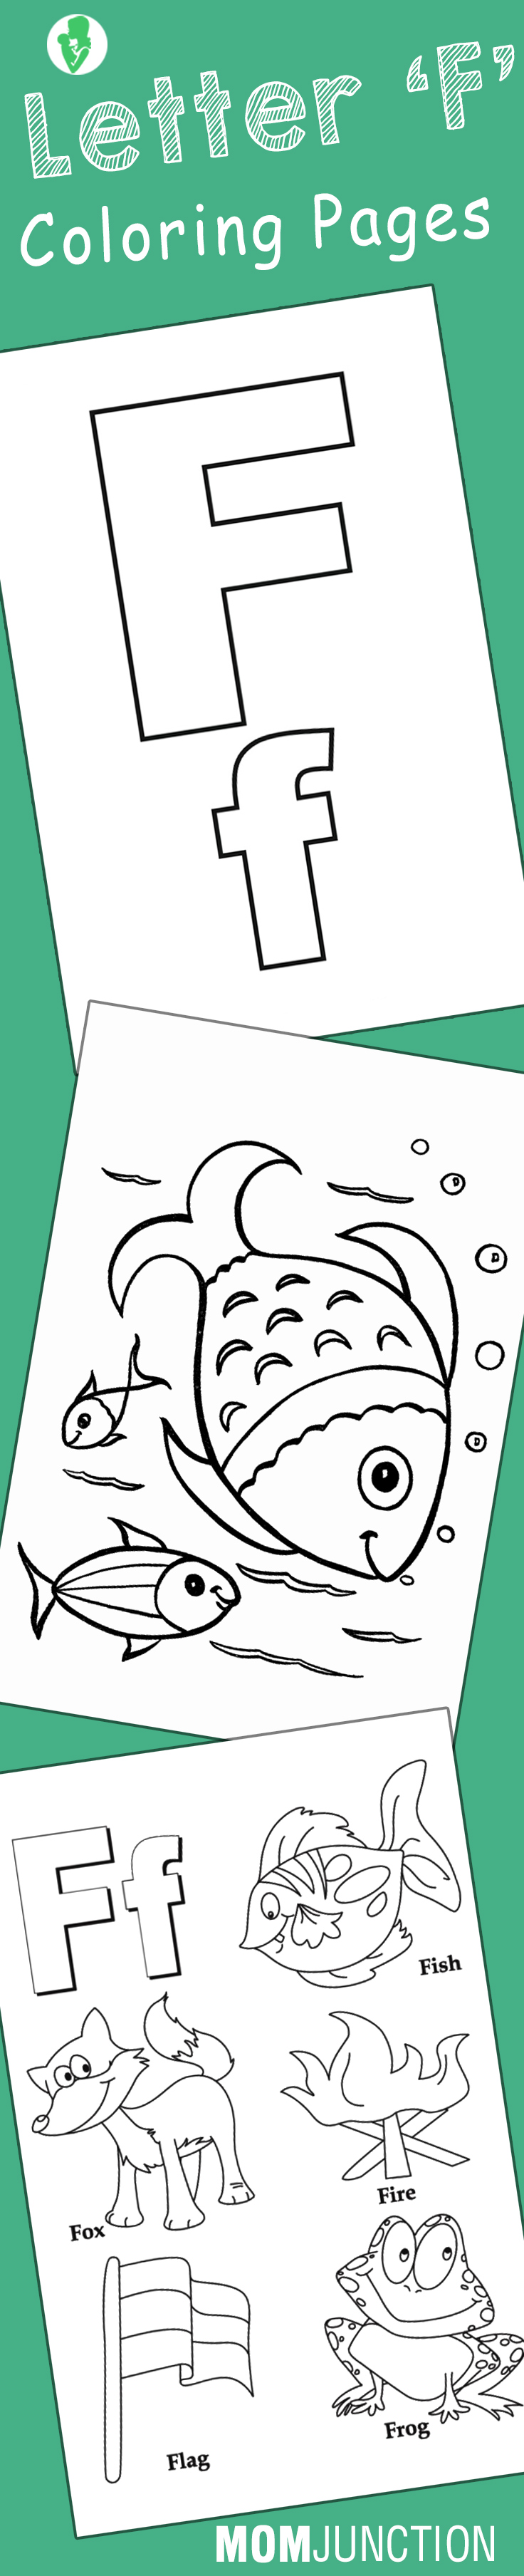 Top 10 letter f coloring pages your toddler will love to learn color